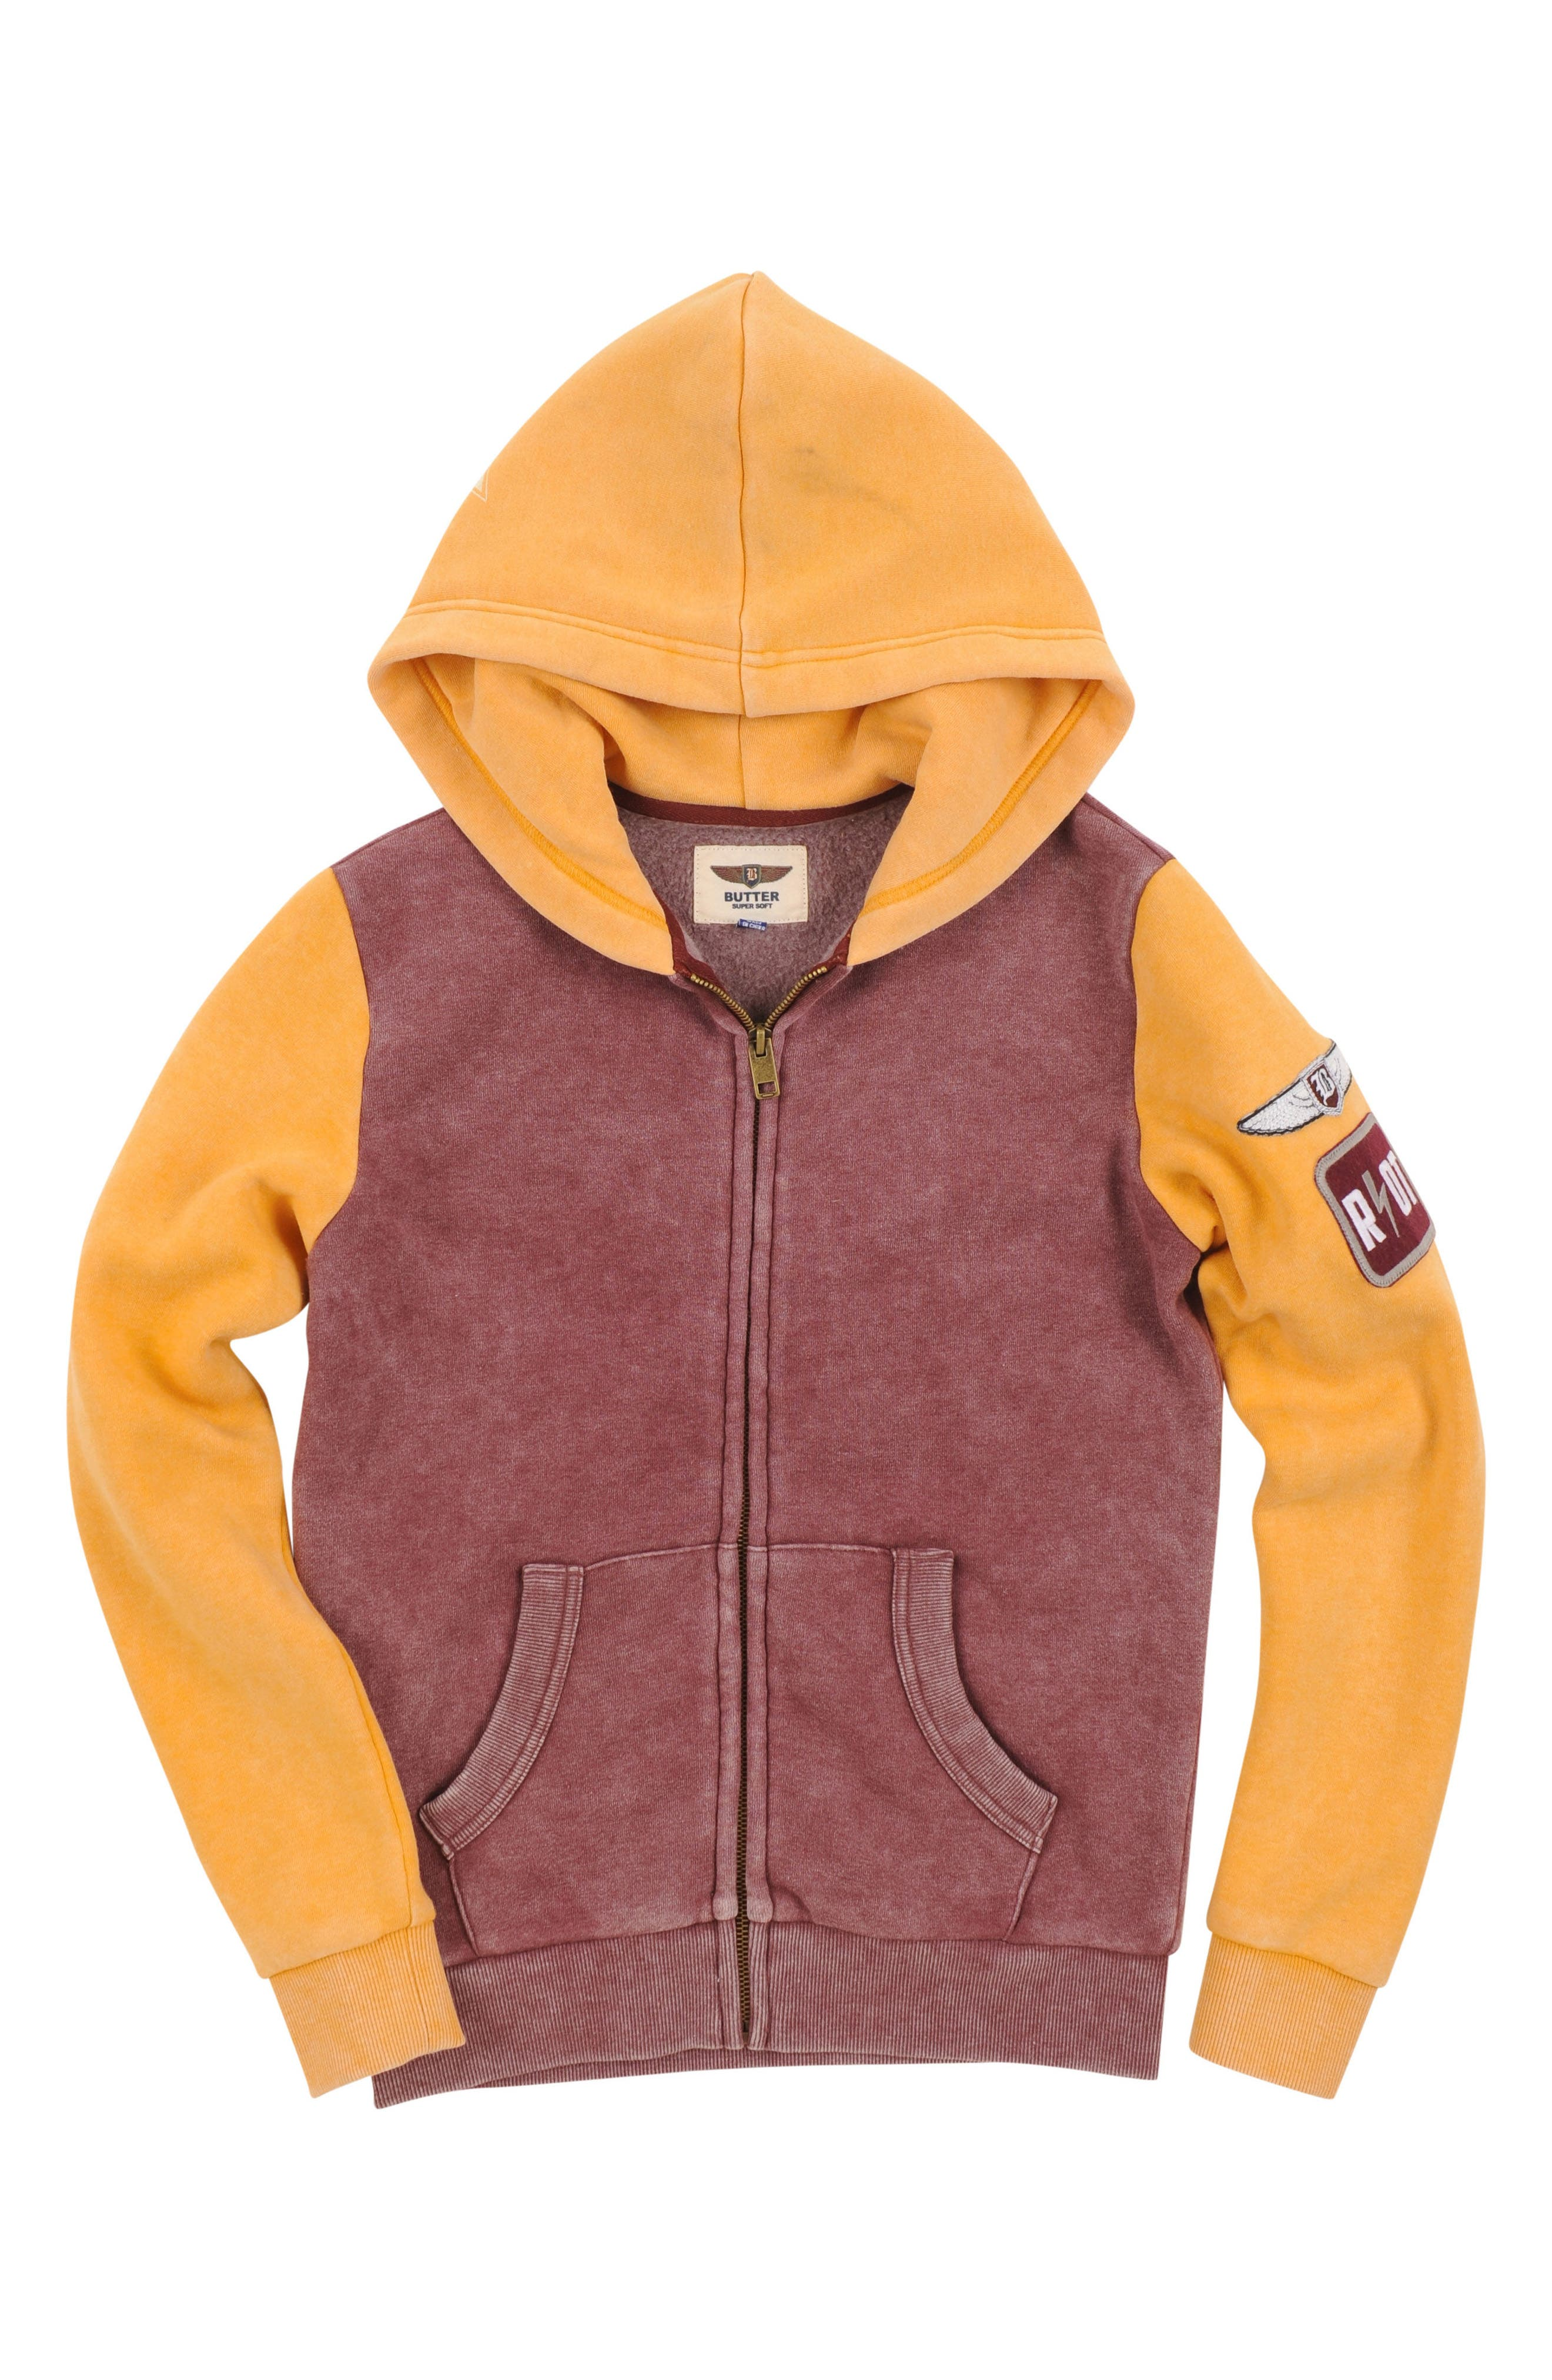 Butter Super Soft Colorblock Zip Hoodie (Little Boys)